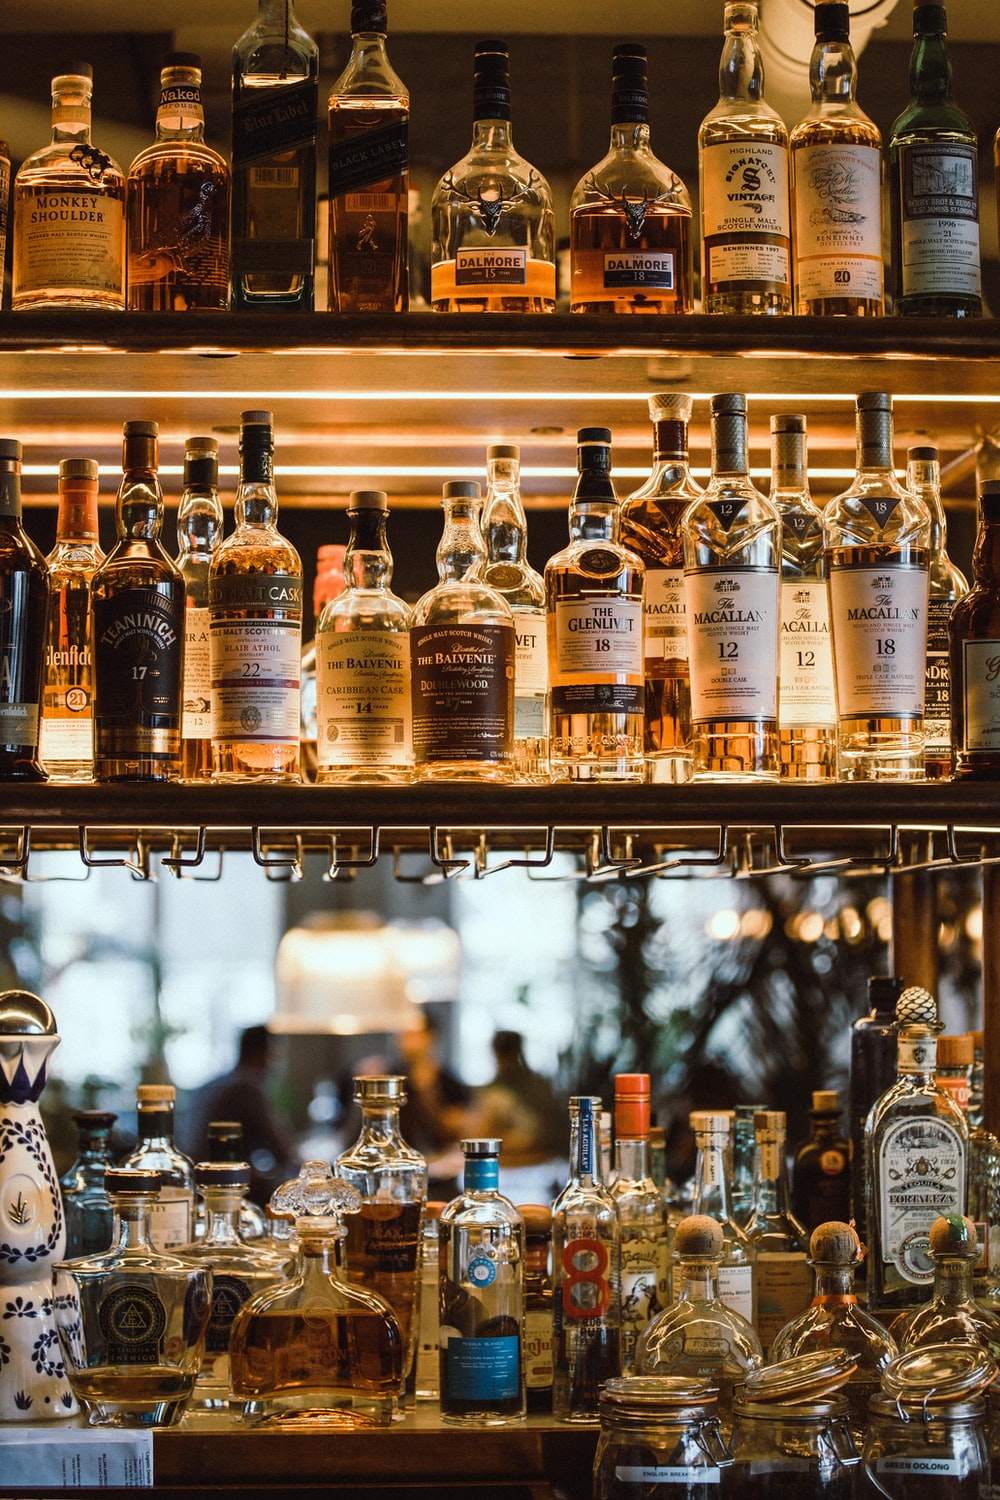 500+ Whisky Pictures [HD] | Download Free Images on Unsplash